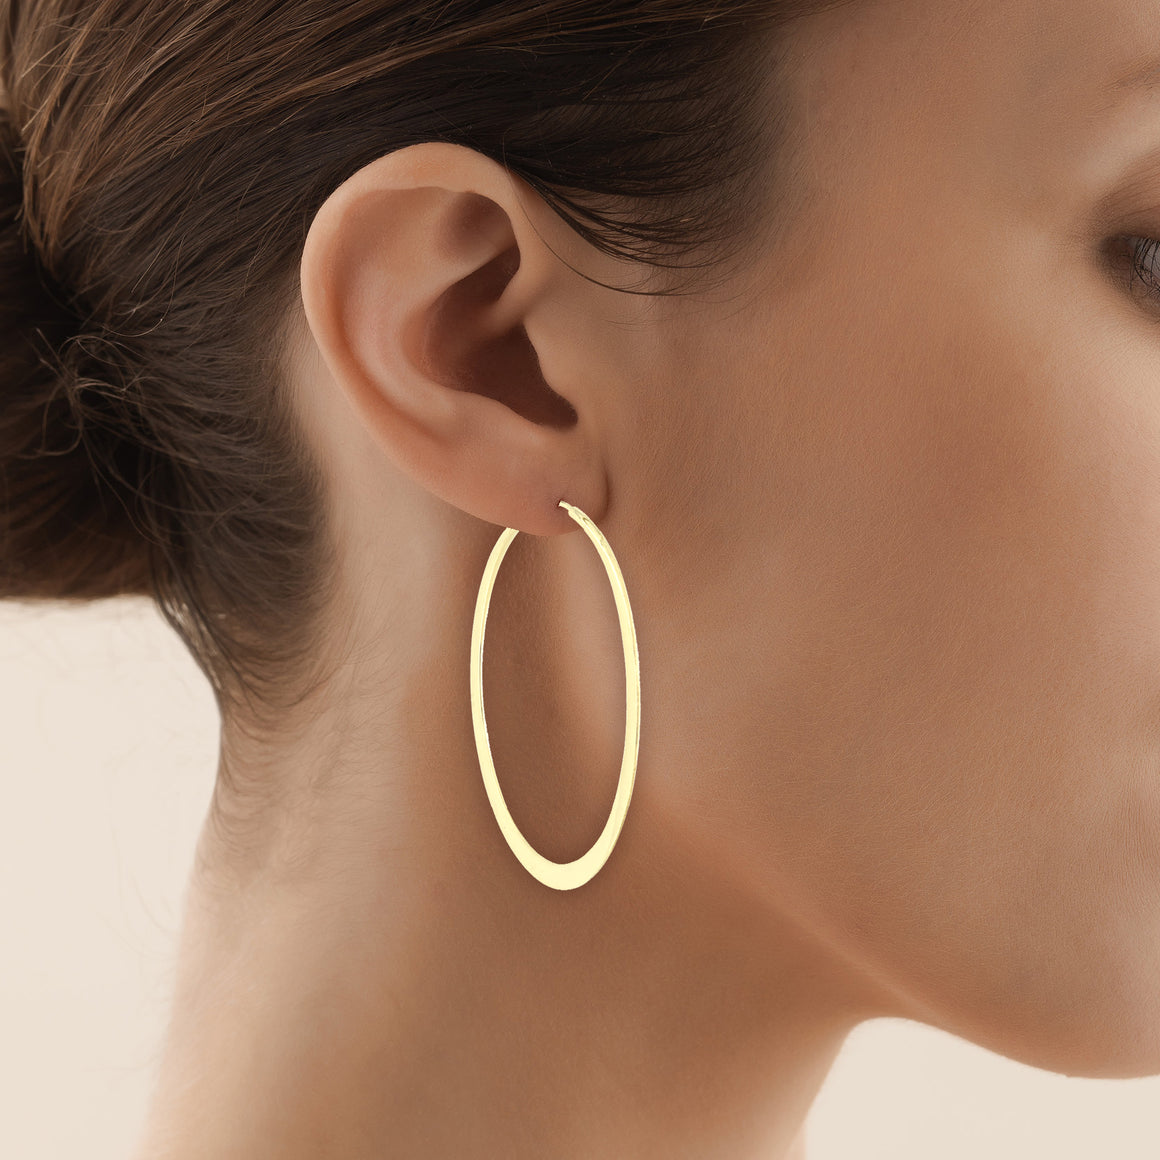 Endless Hoop Earrings in Matte Yellow Gold - 2 inch